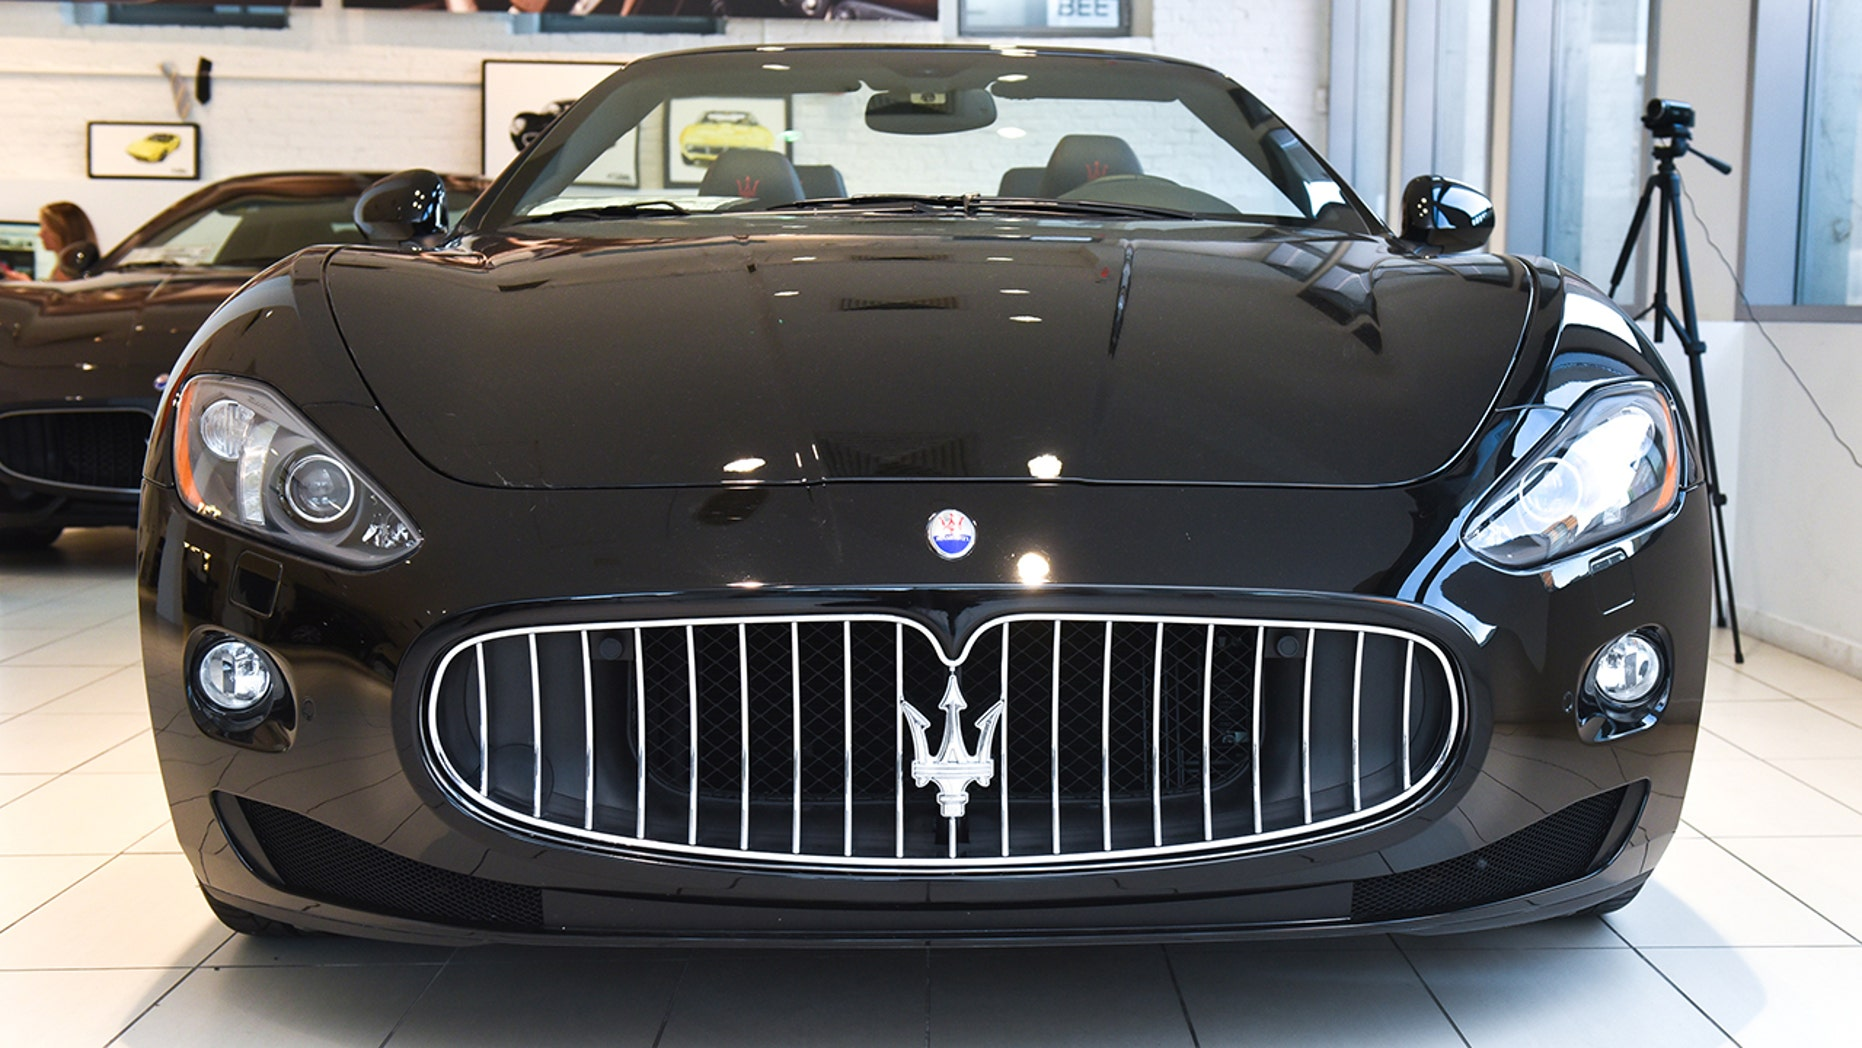 A Maserati is seen in a showroom in New York City,Sept. 27, 2016. (Jared Siskin/Patrick McMullan via Getty Images)